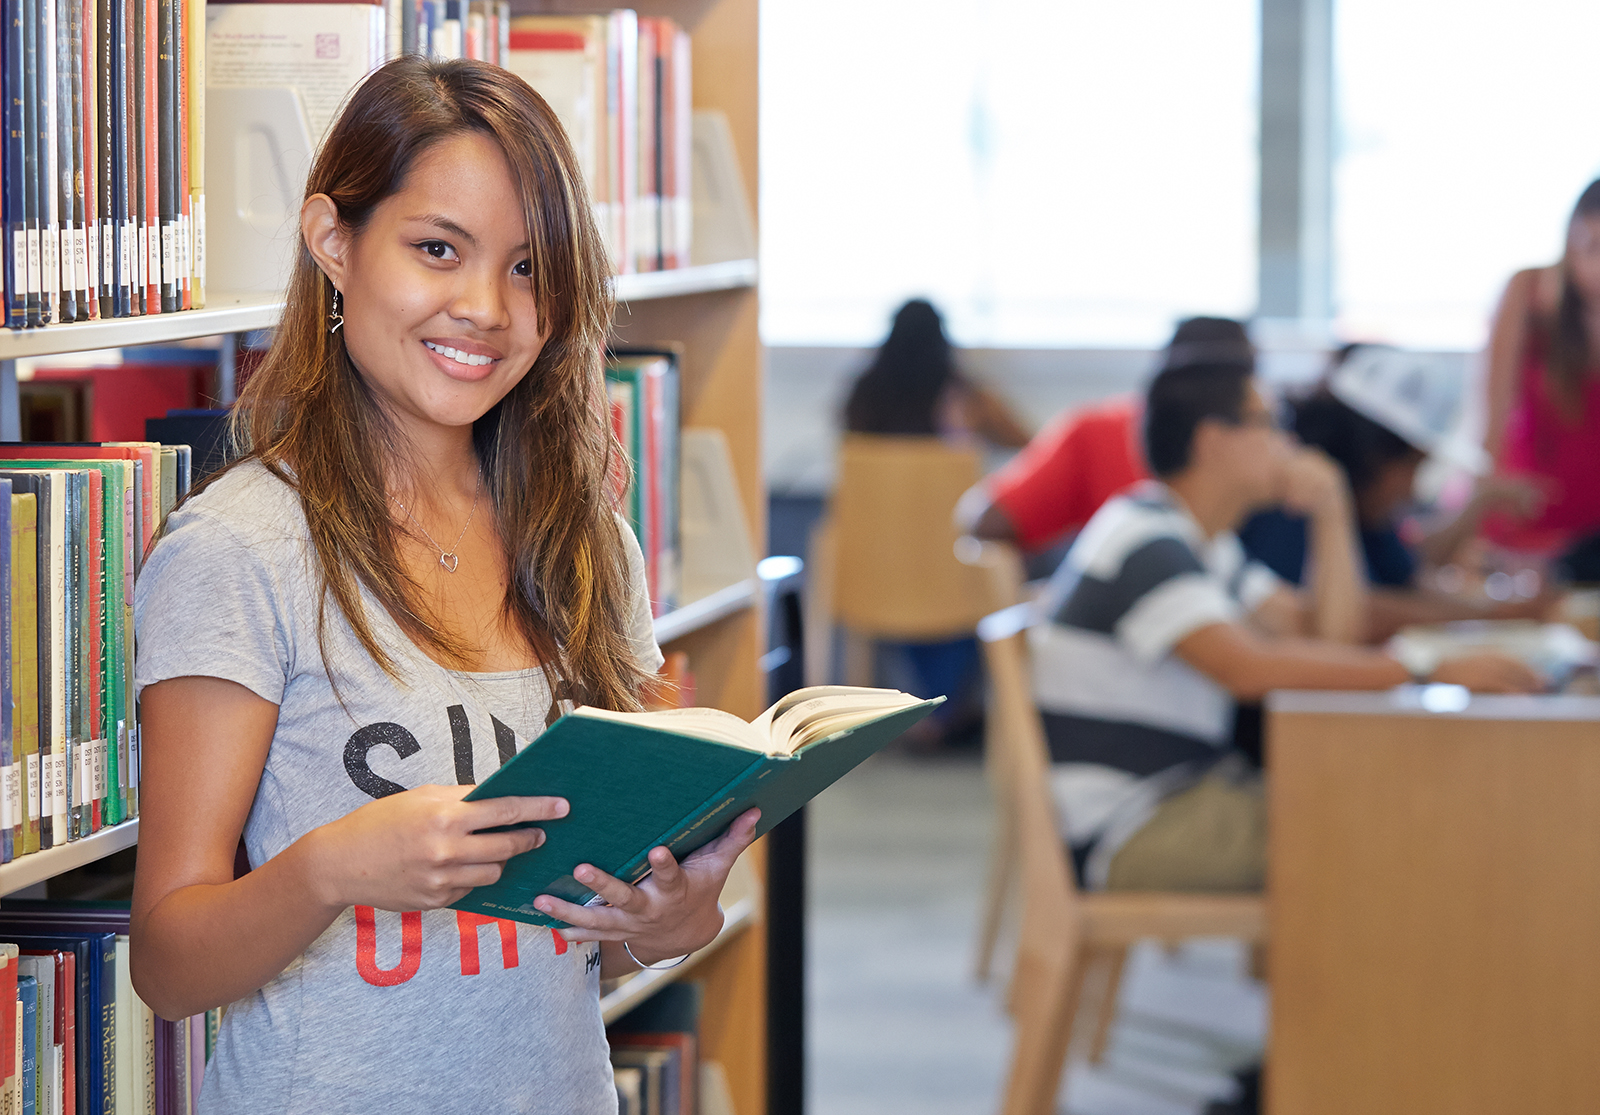 Student smiling while holding a book.